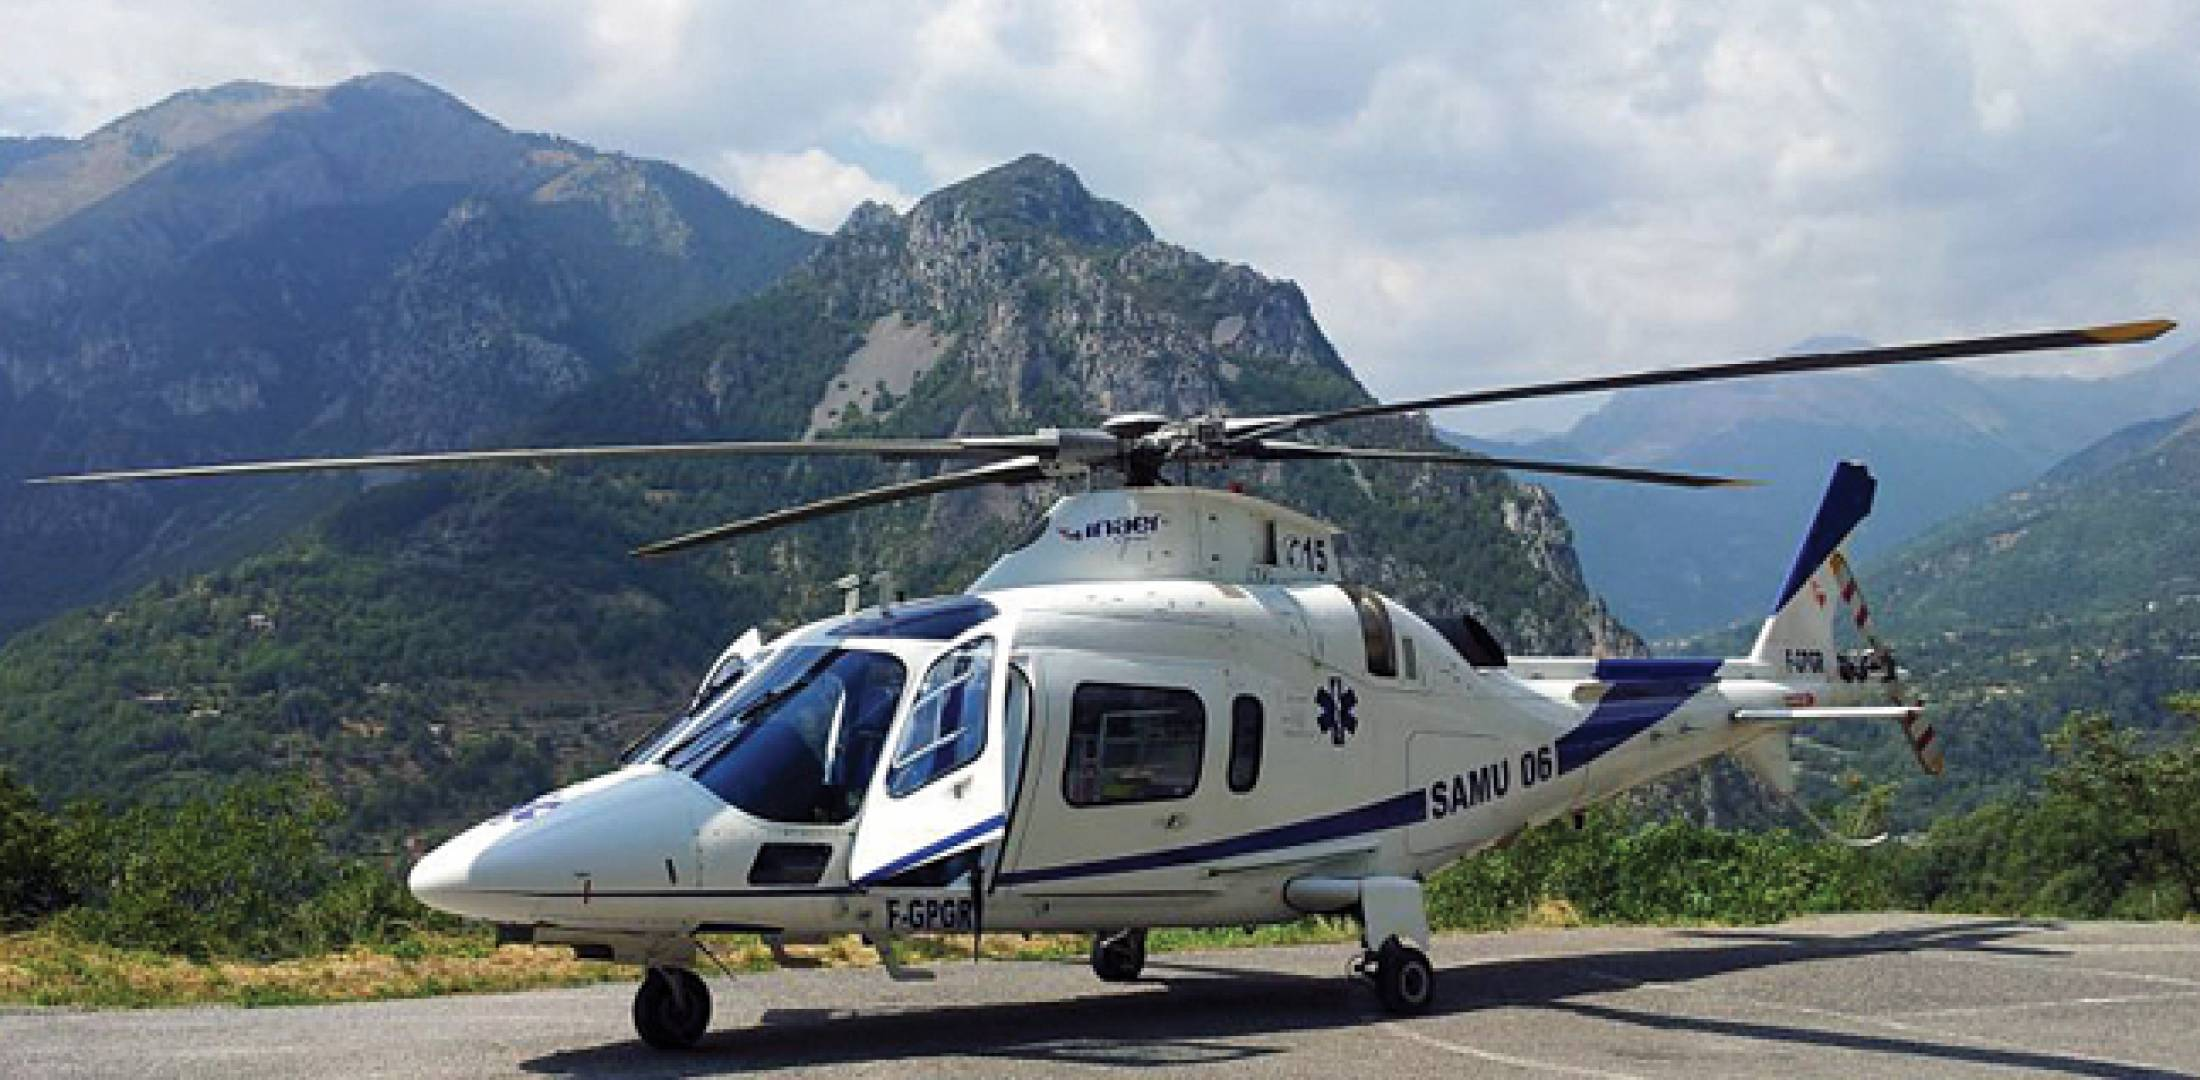 Inaer France has started using night-vision goggles on an AgustaWestland A109 that operates EMS missions from Nice.